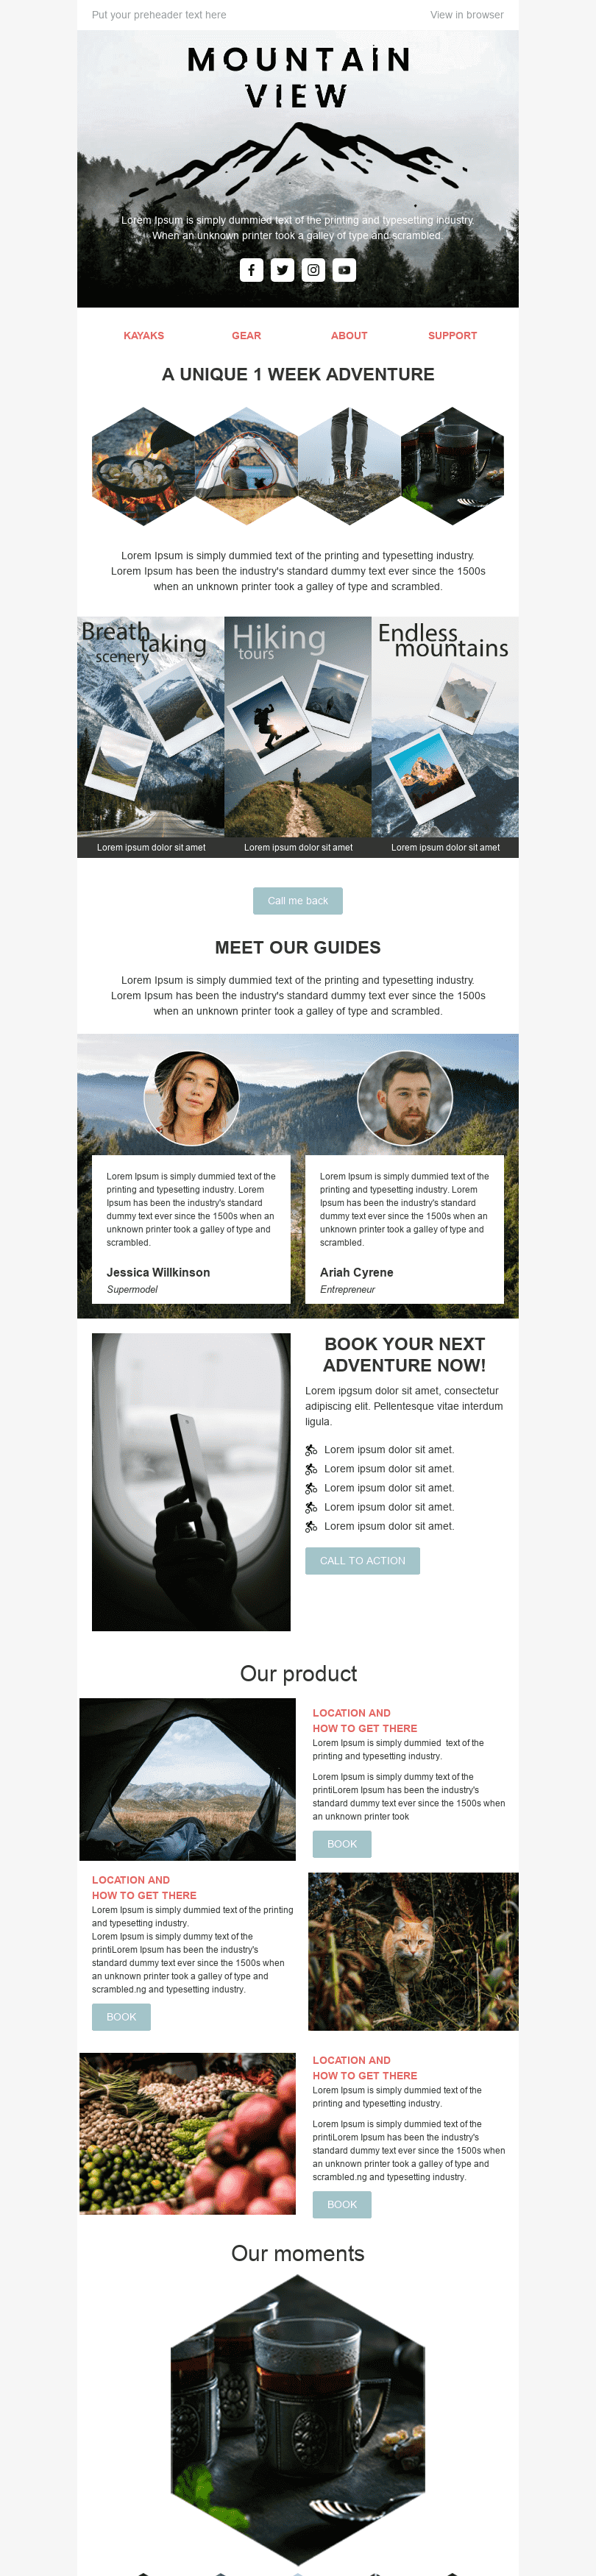 Promo Email Template «Mountain View» for Tourism industry desktop view